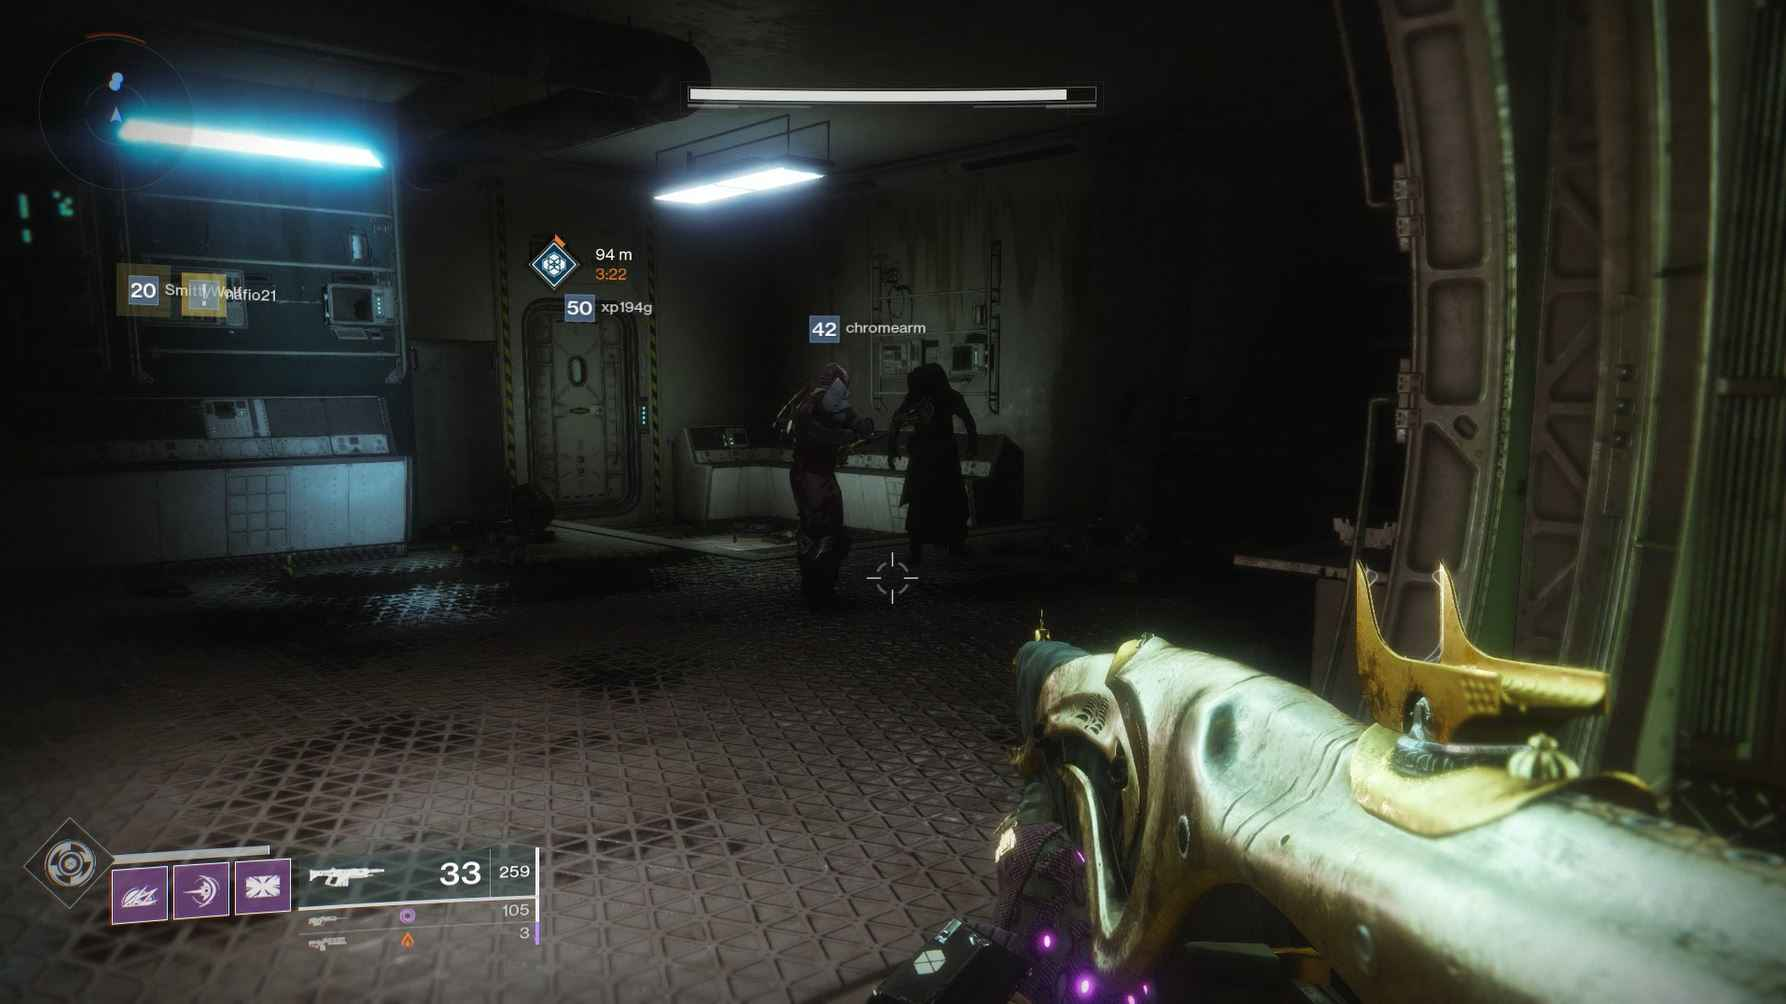 Where is Xur? Xur is in this dark room.